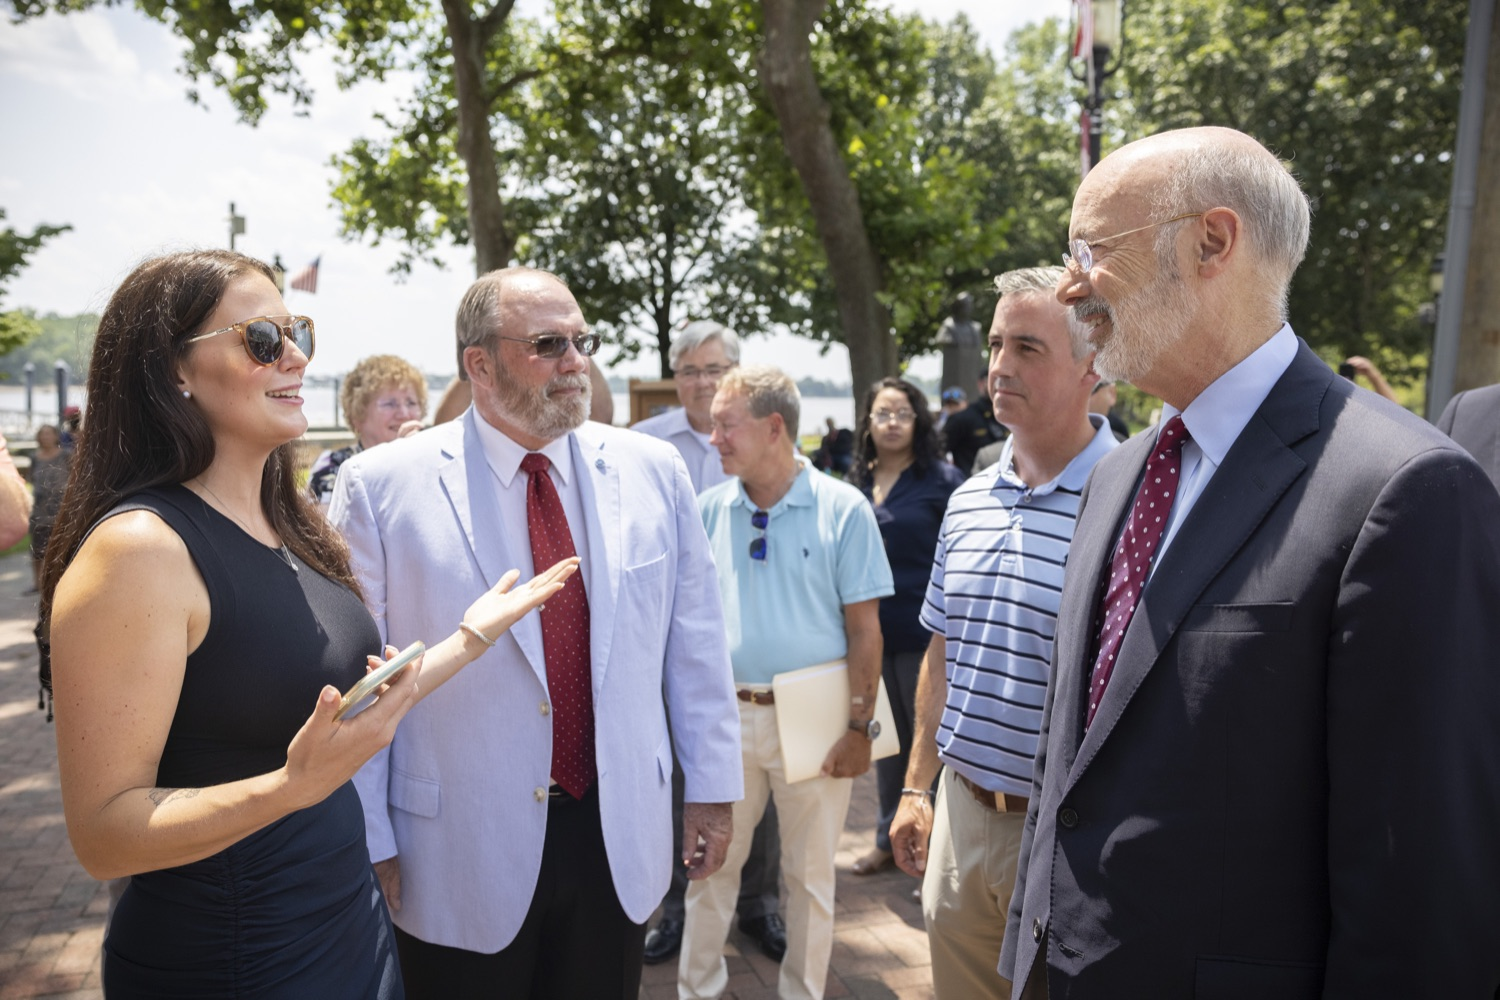 """<a href=""""https://filesource.wostreaming.net/commonwealthofpa/photo/18932_gov_chirp_dz_020.jpg"""" target=""""_blank"""">⇣Download Photo<br></a>Dana Pezza, Owner, Itri Wood Fired speaking with Pennsylvania Governor Tom Wolf.  Governor Tom Wolf today joined the Pennsylvania Department of Community and Economic Development, Bucks County Commissioners, Bristol Borough Mayor Joseph Saxton, local lawmakers, Bucks County Economic Development Corporation, Visit Bucks County, the Bucks County Redevelopment Authority, and the owners of Itri Wood Fired to highlight the $7 million in grant funding provided to Bucks County restaurants through the COVID-19 Hospitality Industry Recovery Program(CHIRP).  JULY 16, 2021 - BRISTOL, PA"""